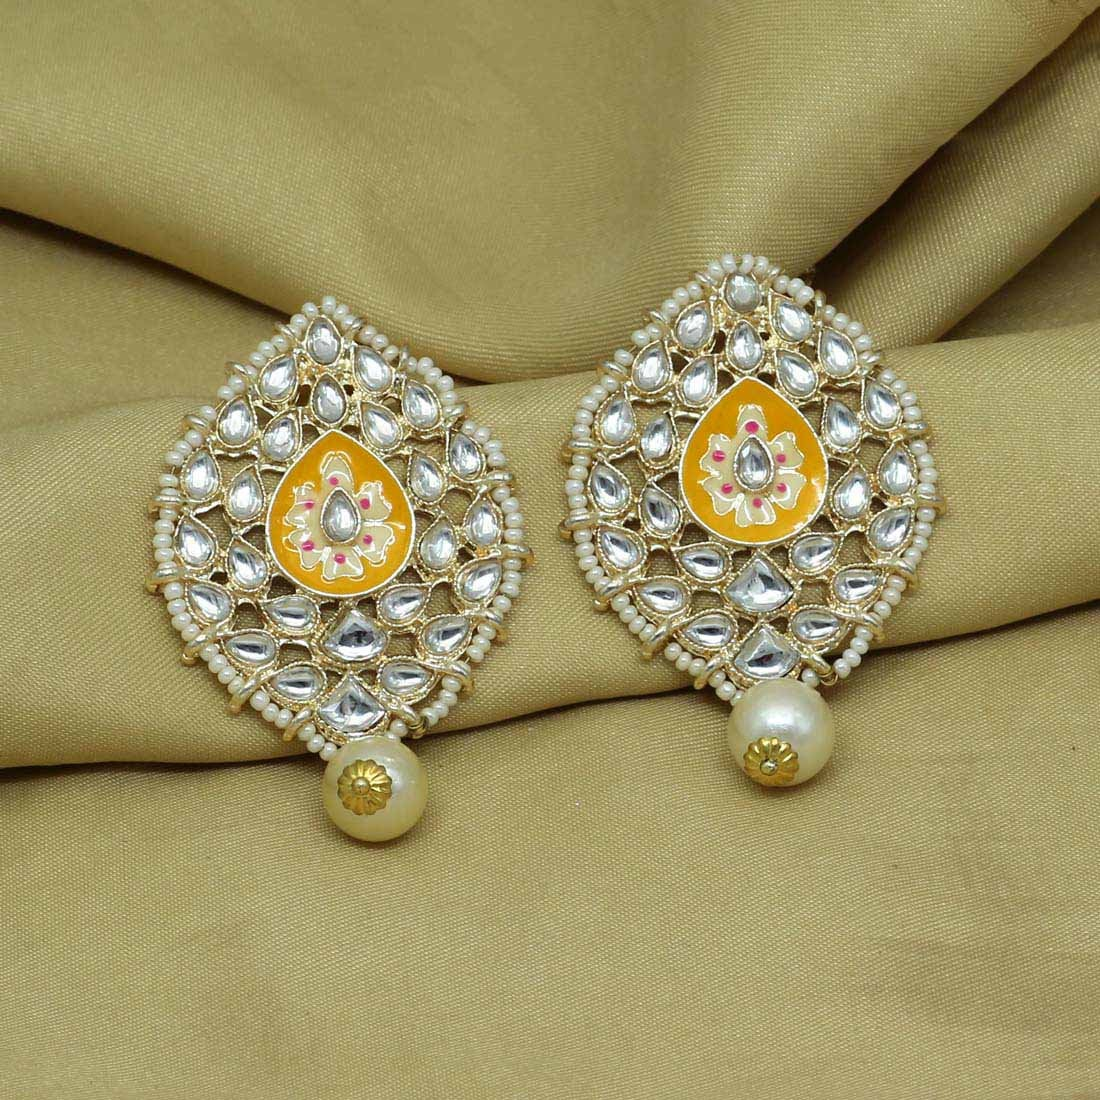 indian earring/amrapali earring/traditional earring/stud earring/designer earring/statement earring/bollywood earring/rajawadi earring